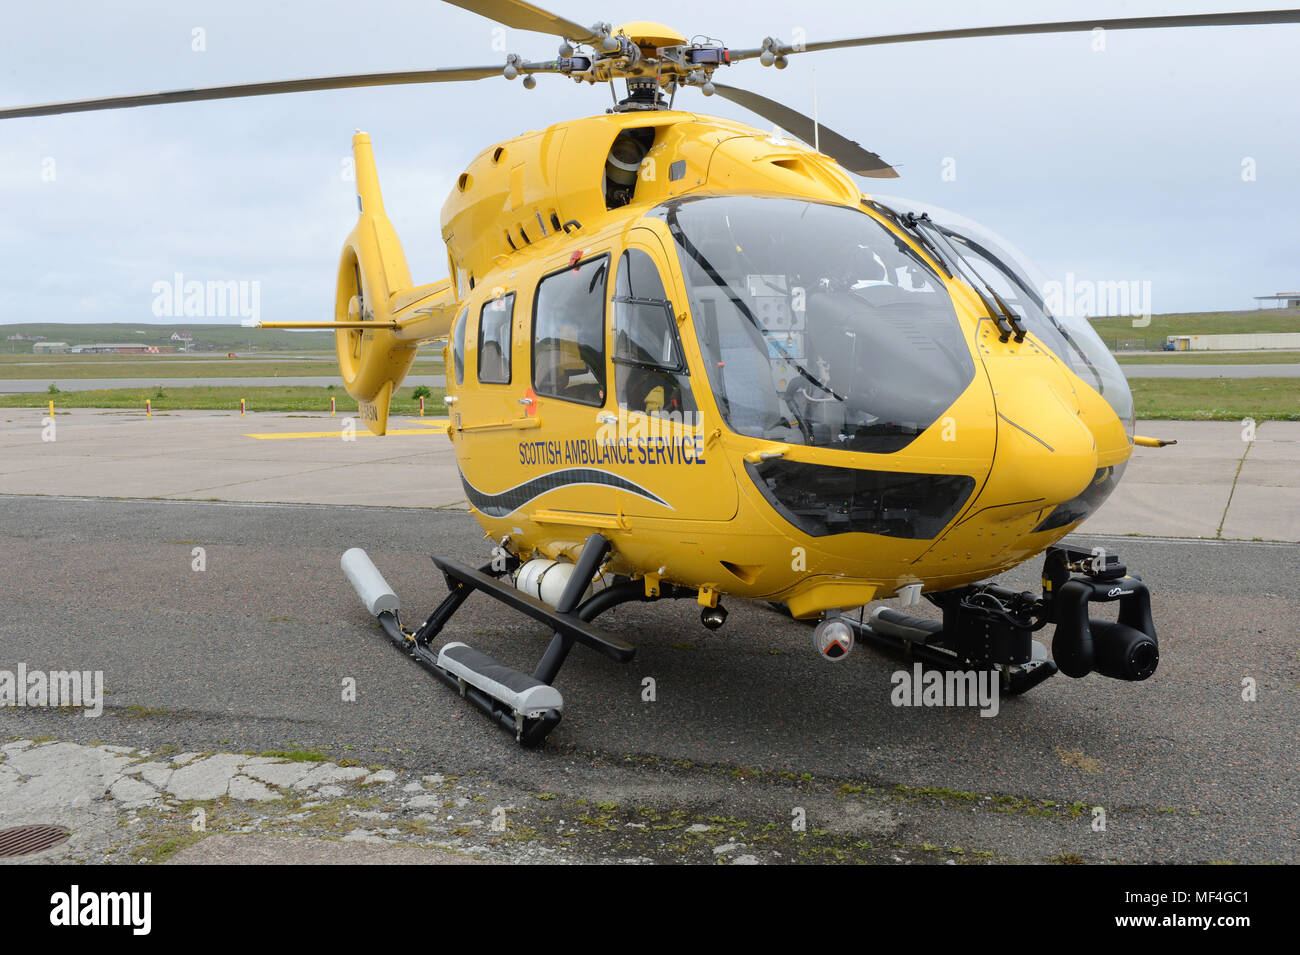 Scottish Ambulane Service helicopter on the apron at Sumburgh Airport Shetland Stock Photo